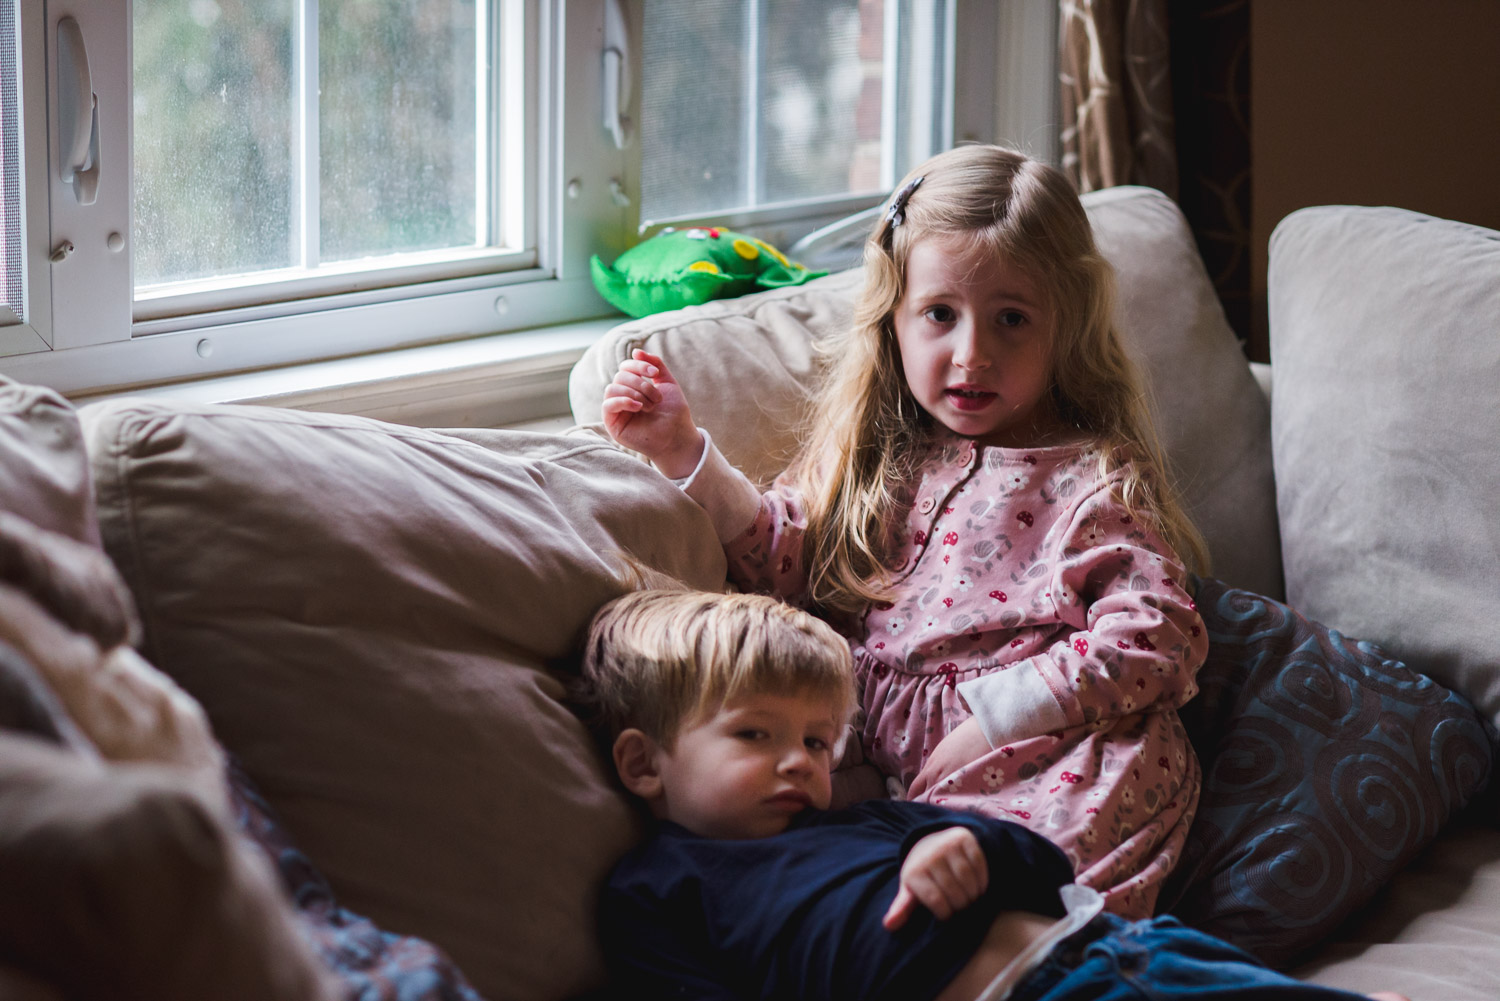 Children lounging on the living room couch.